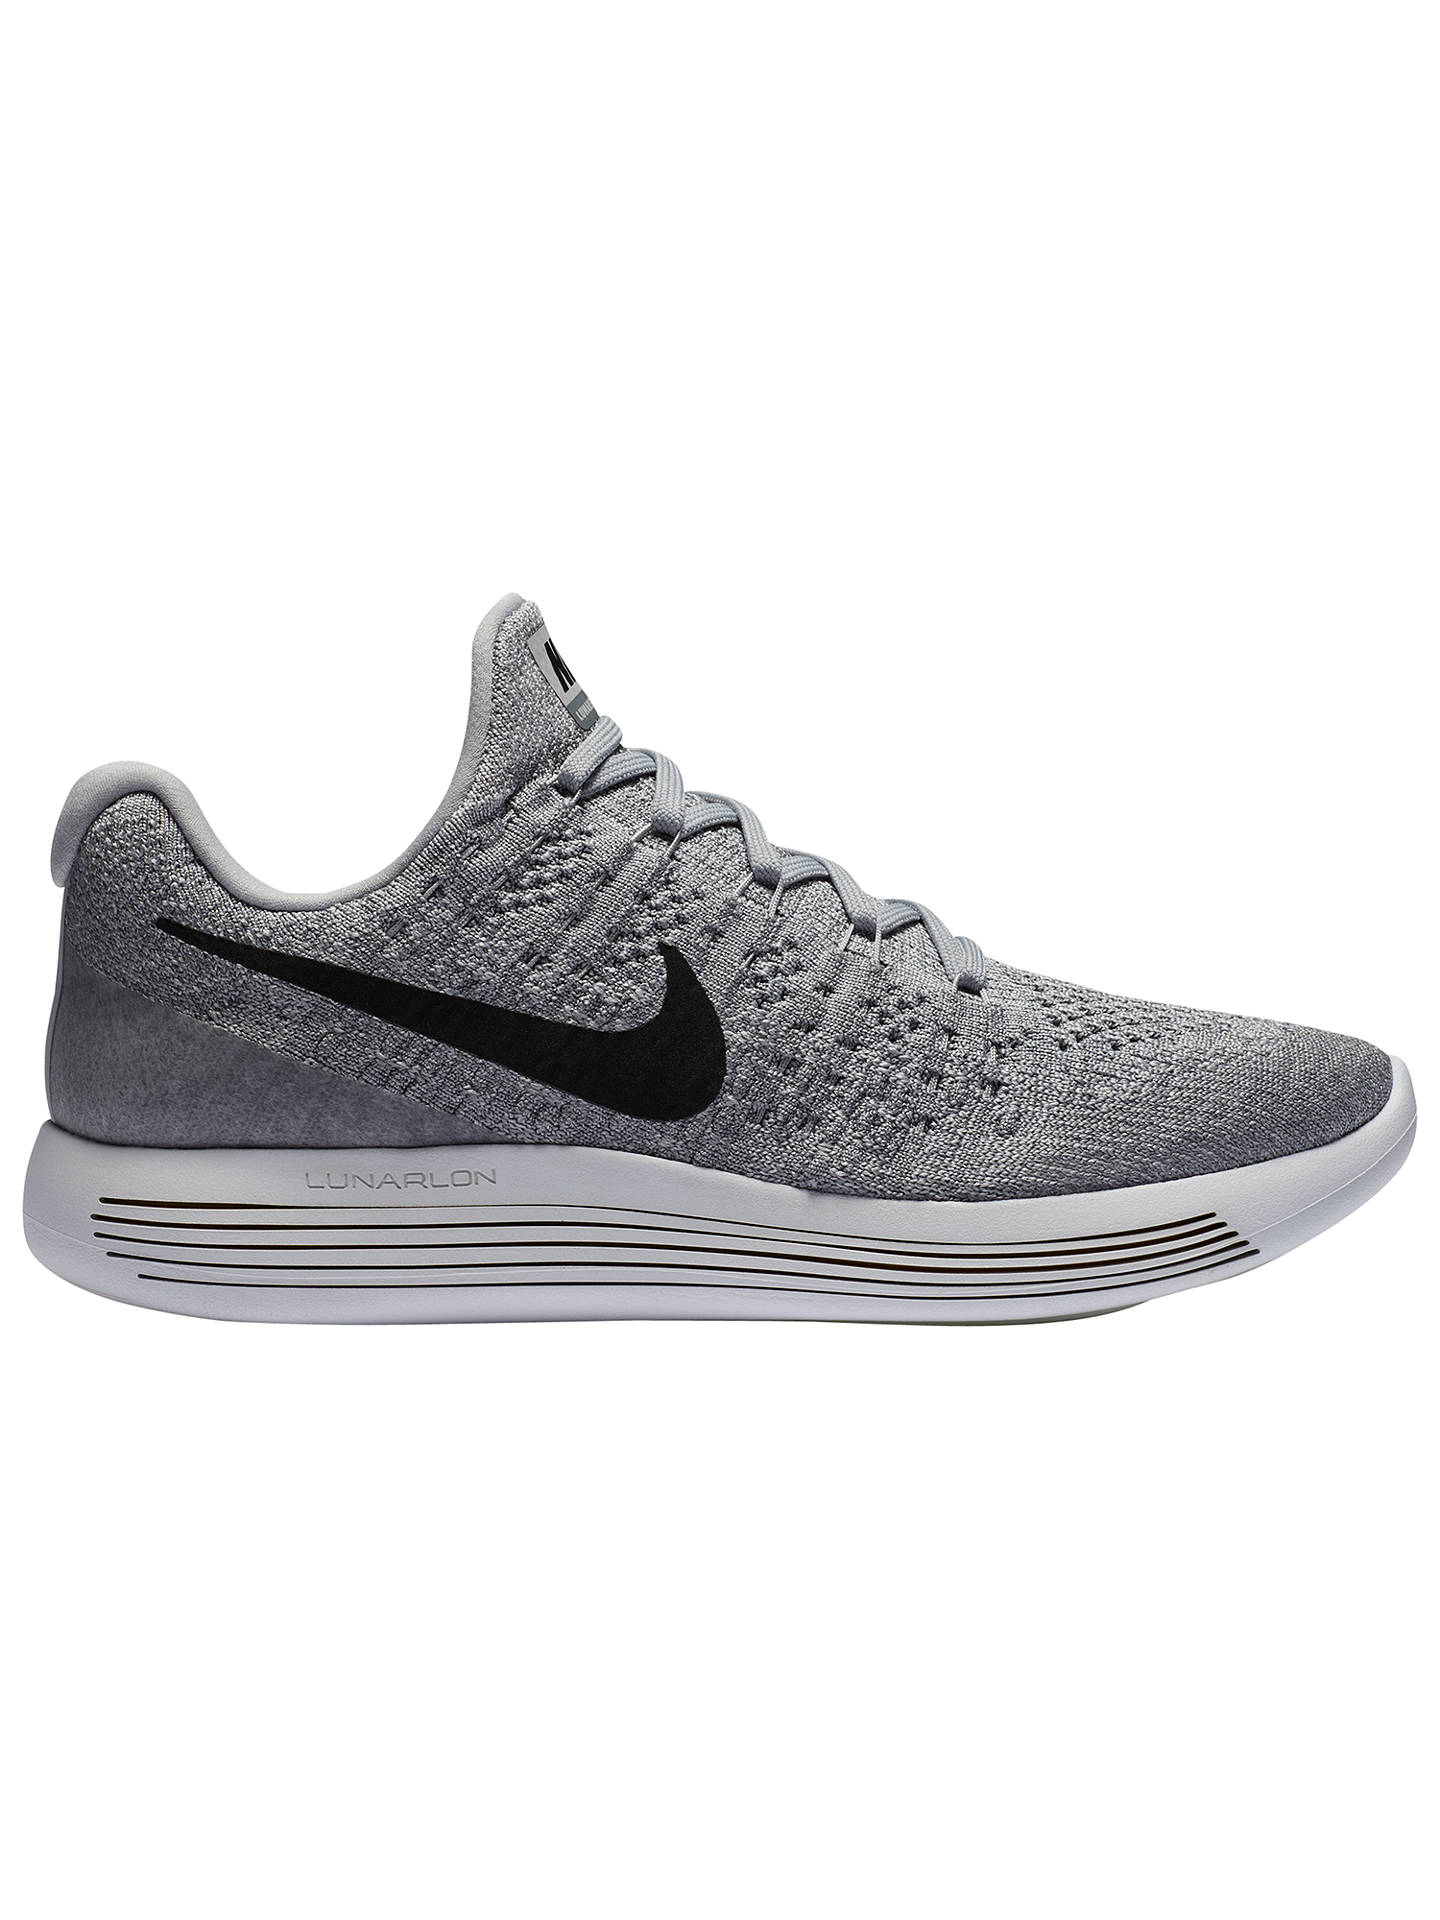 5e892d3574b94 Nike LunarEpic Low Flyknit 2 Women s Running Shoes at John Lewis ...